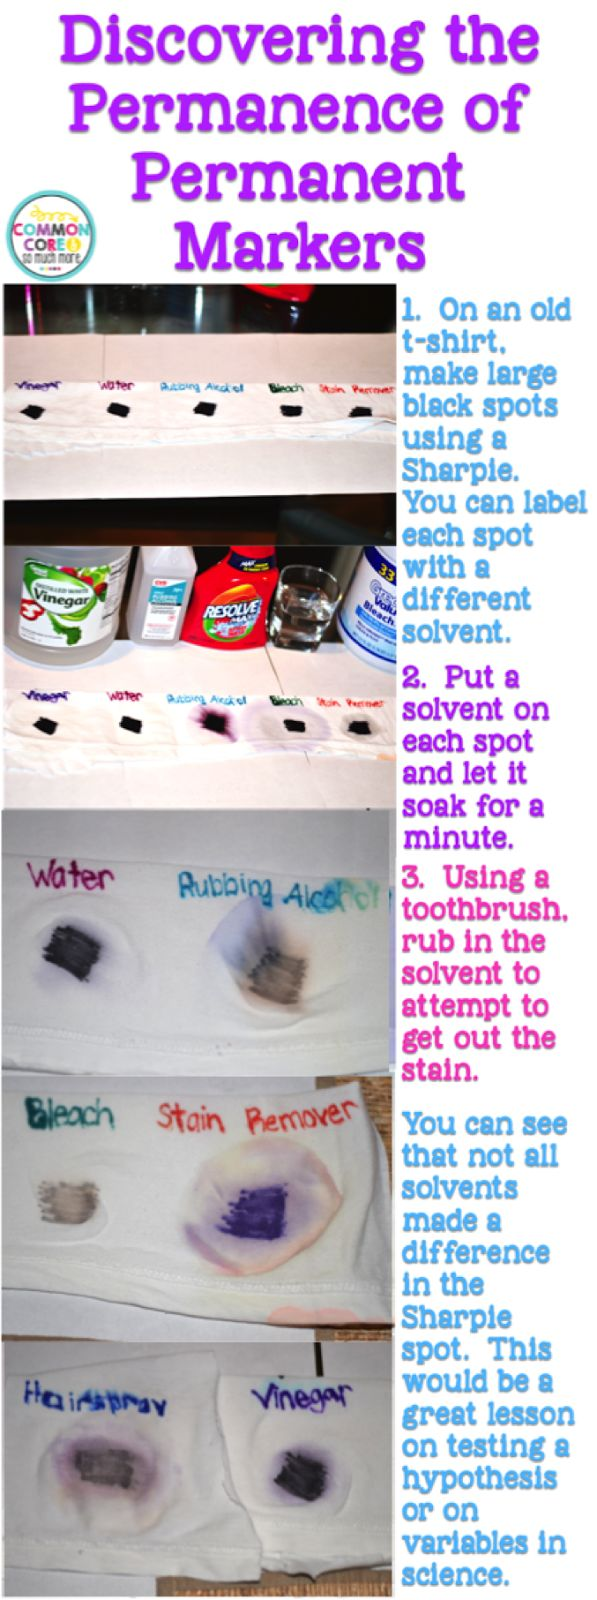 Sharpie Science- great experiment for testing out your hypotheses and variables!  Two other cool experiments shown in post, too.